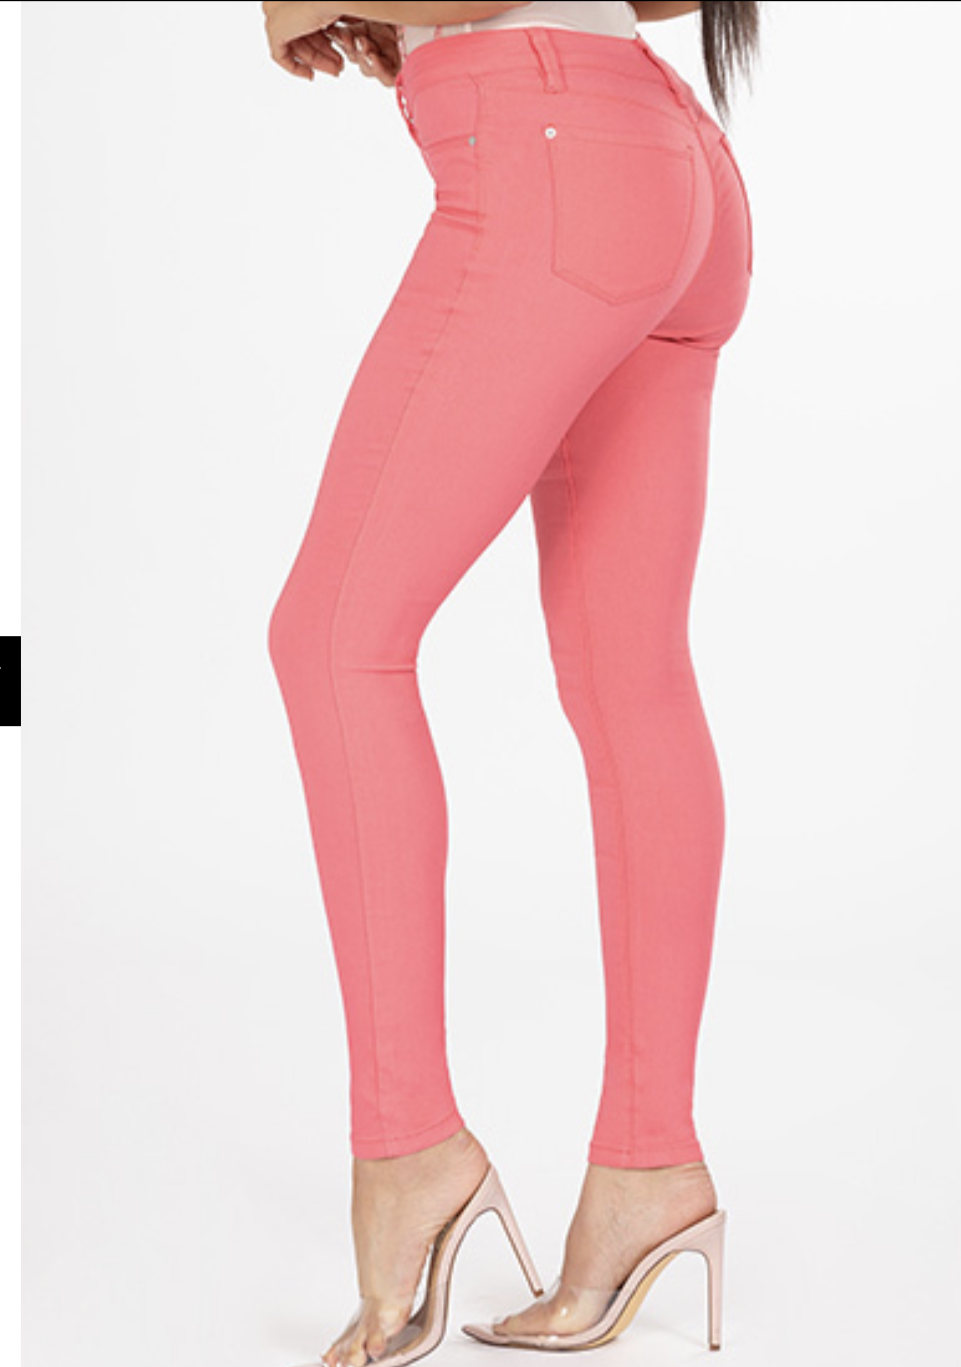 YMI Hyper Stretch Skinnies - Pink